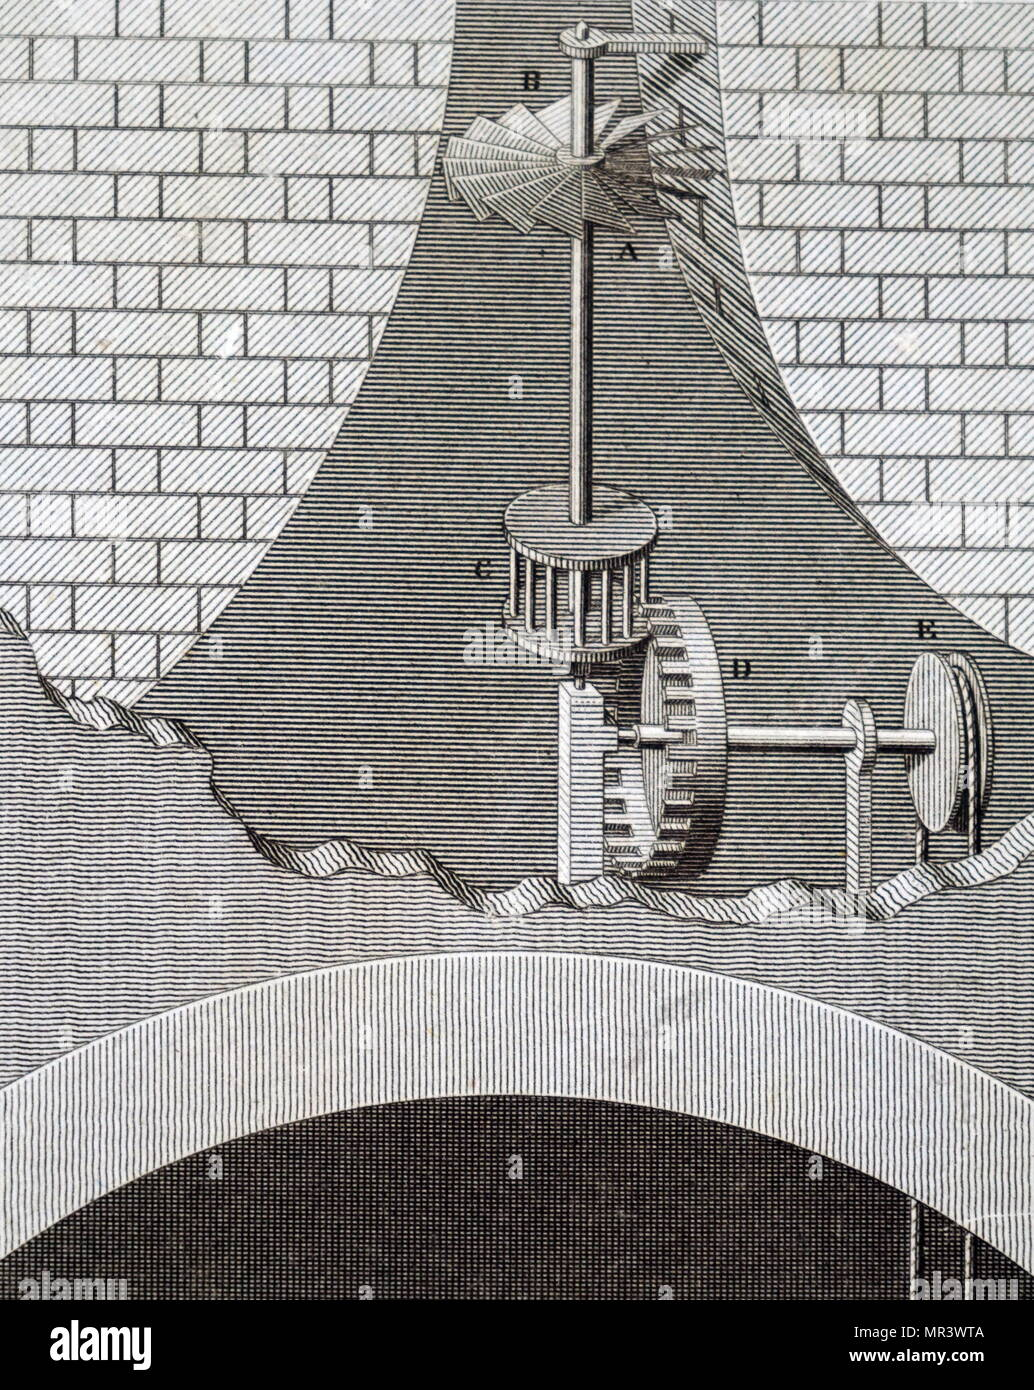 Engraving depicting a smoke jack: hot air rising in chimney acts on vanes, A,B moving axis of pinion C, which engages toothed wheel. Grooved wooden wheel, E, carries rope or chain to drive spit on hearth below. Dated 19th century - Stock Image